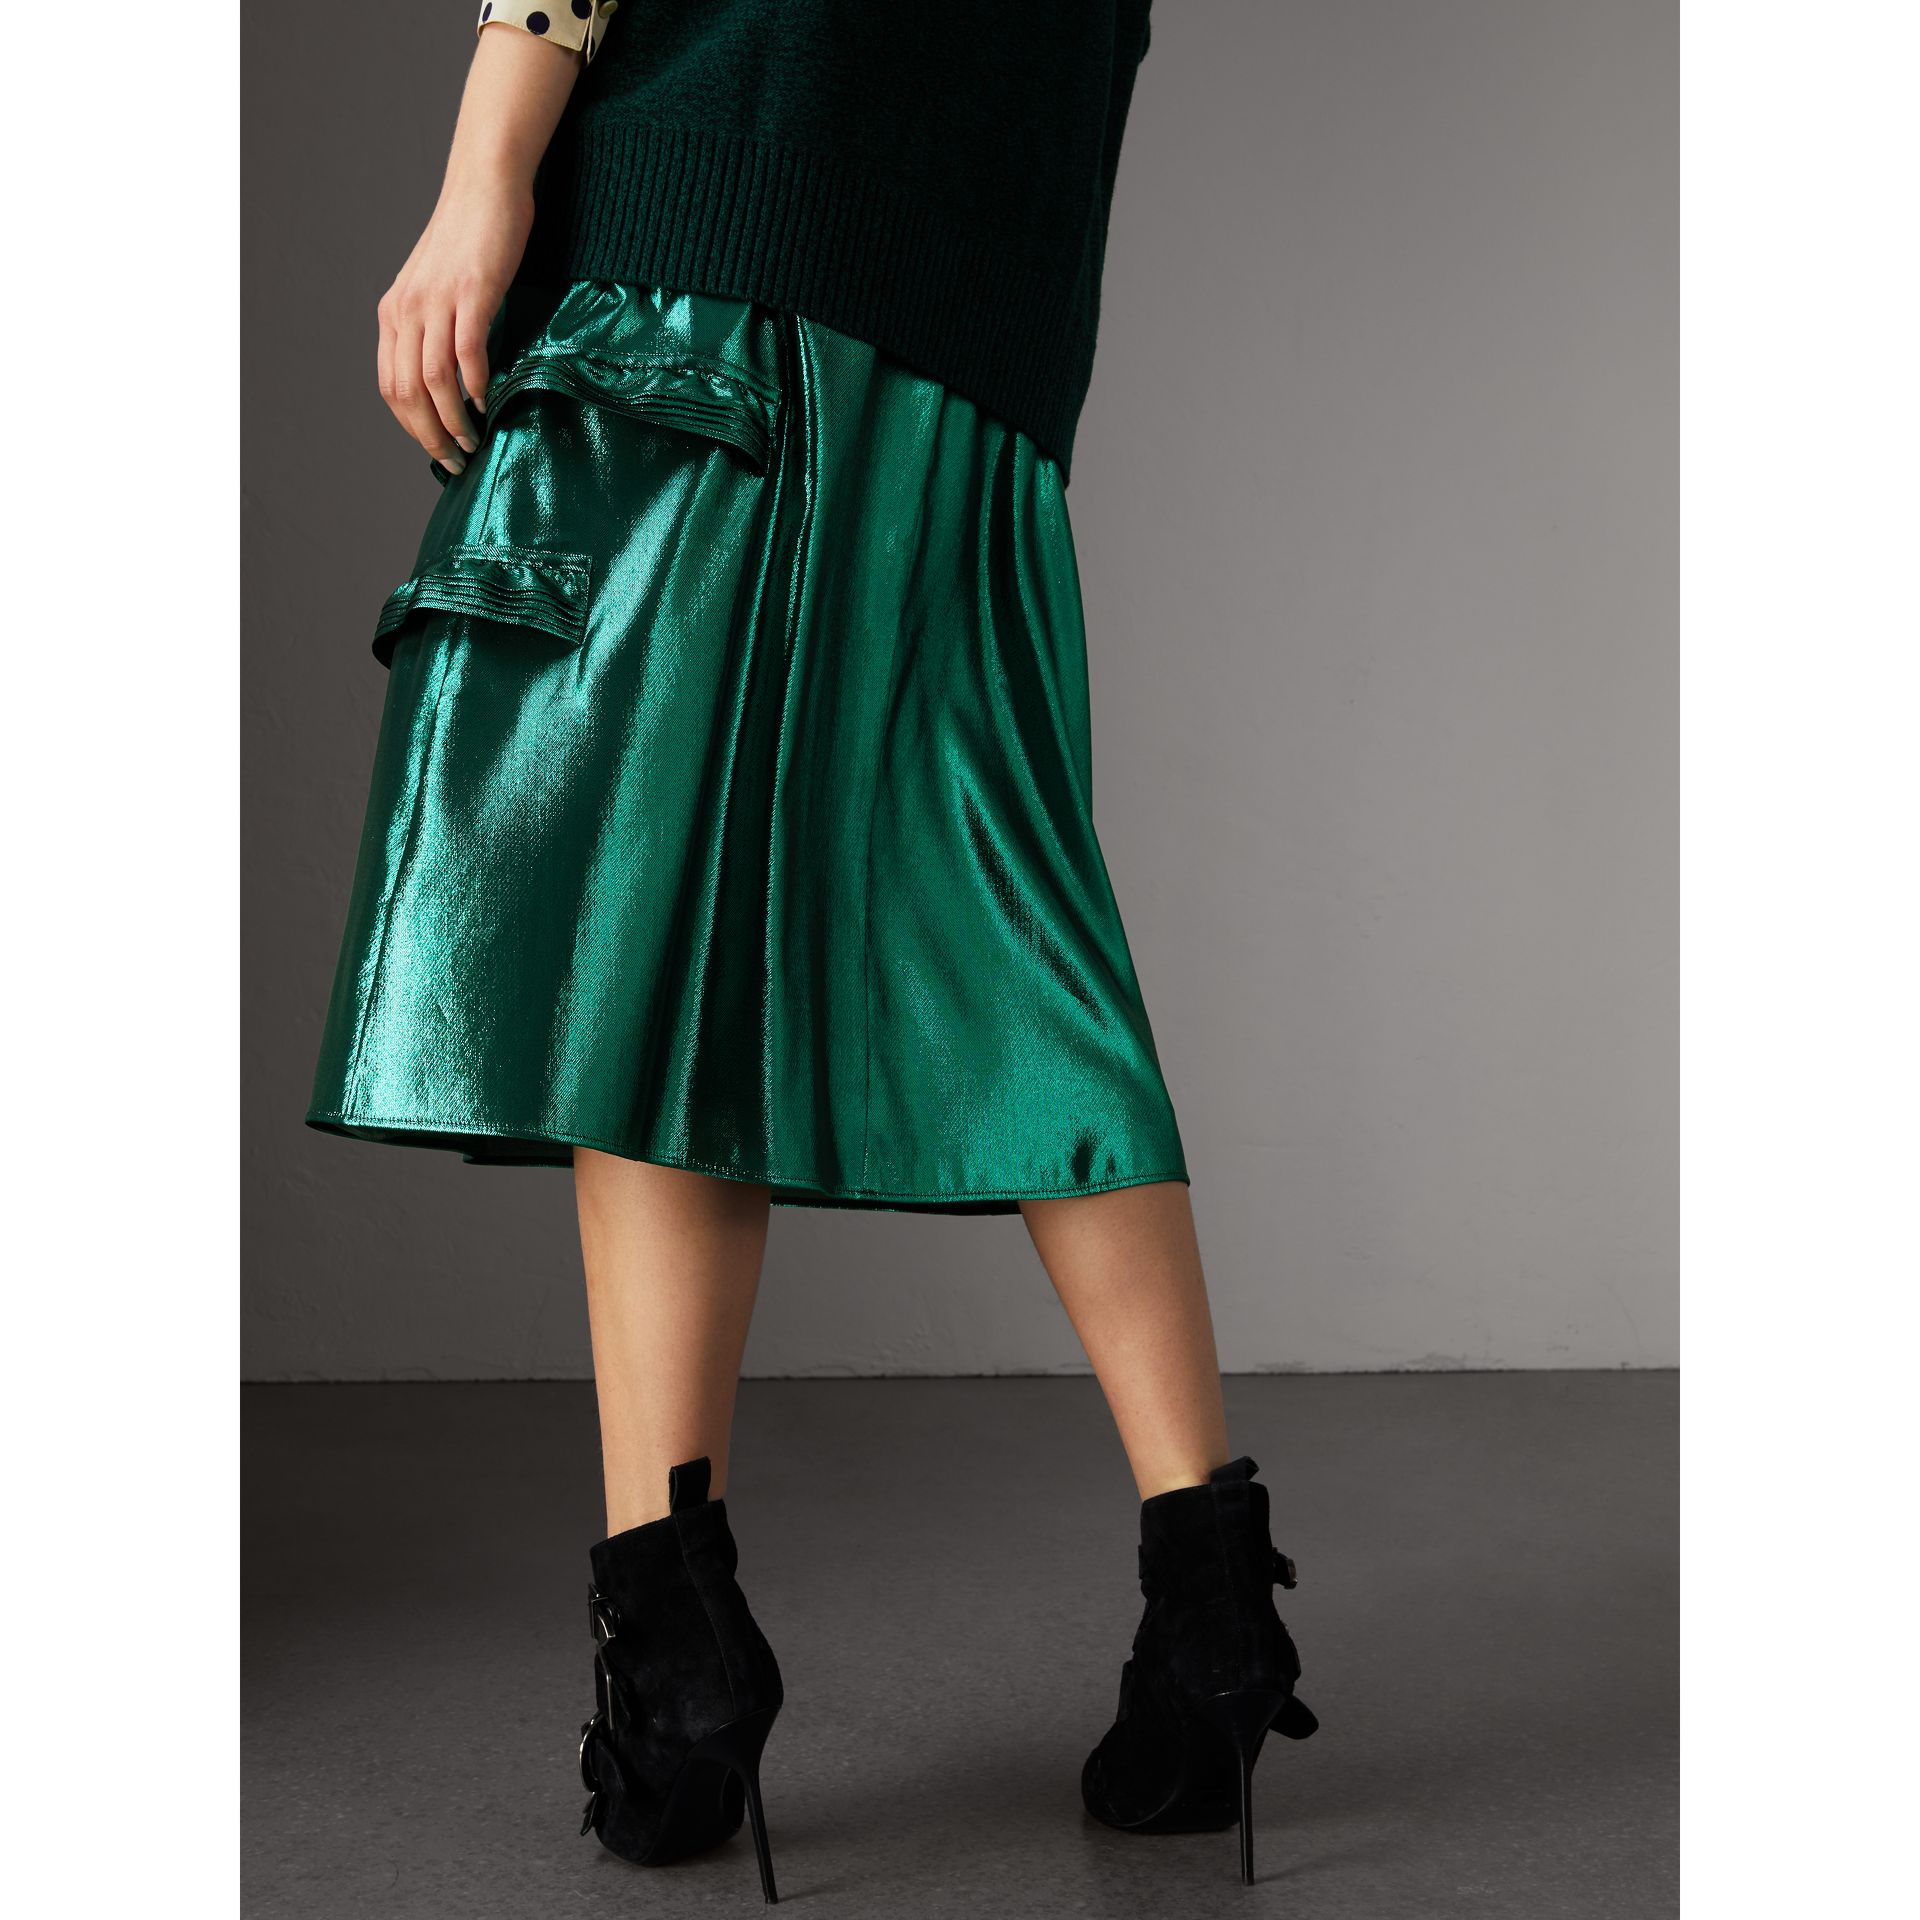 Ruffle Detail Lamé Skirt – Online Exclusive in Turquoise - Women | Burberry - gallery image 3